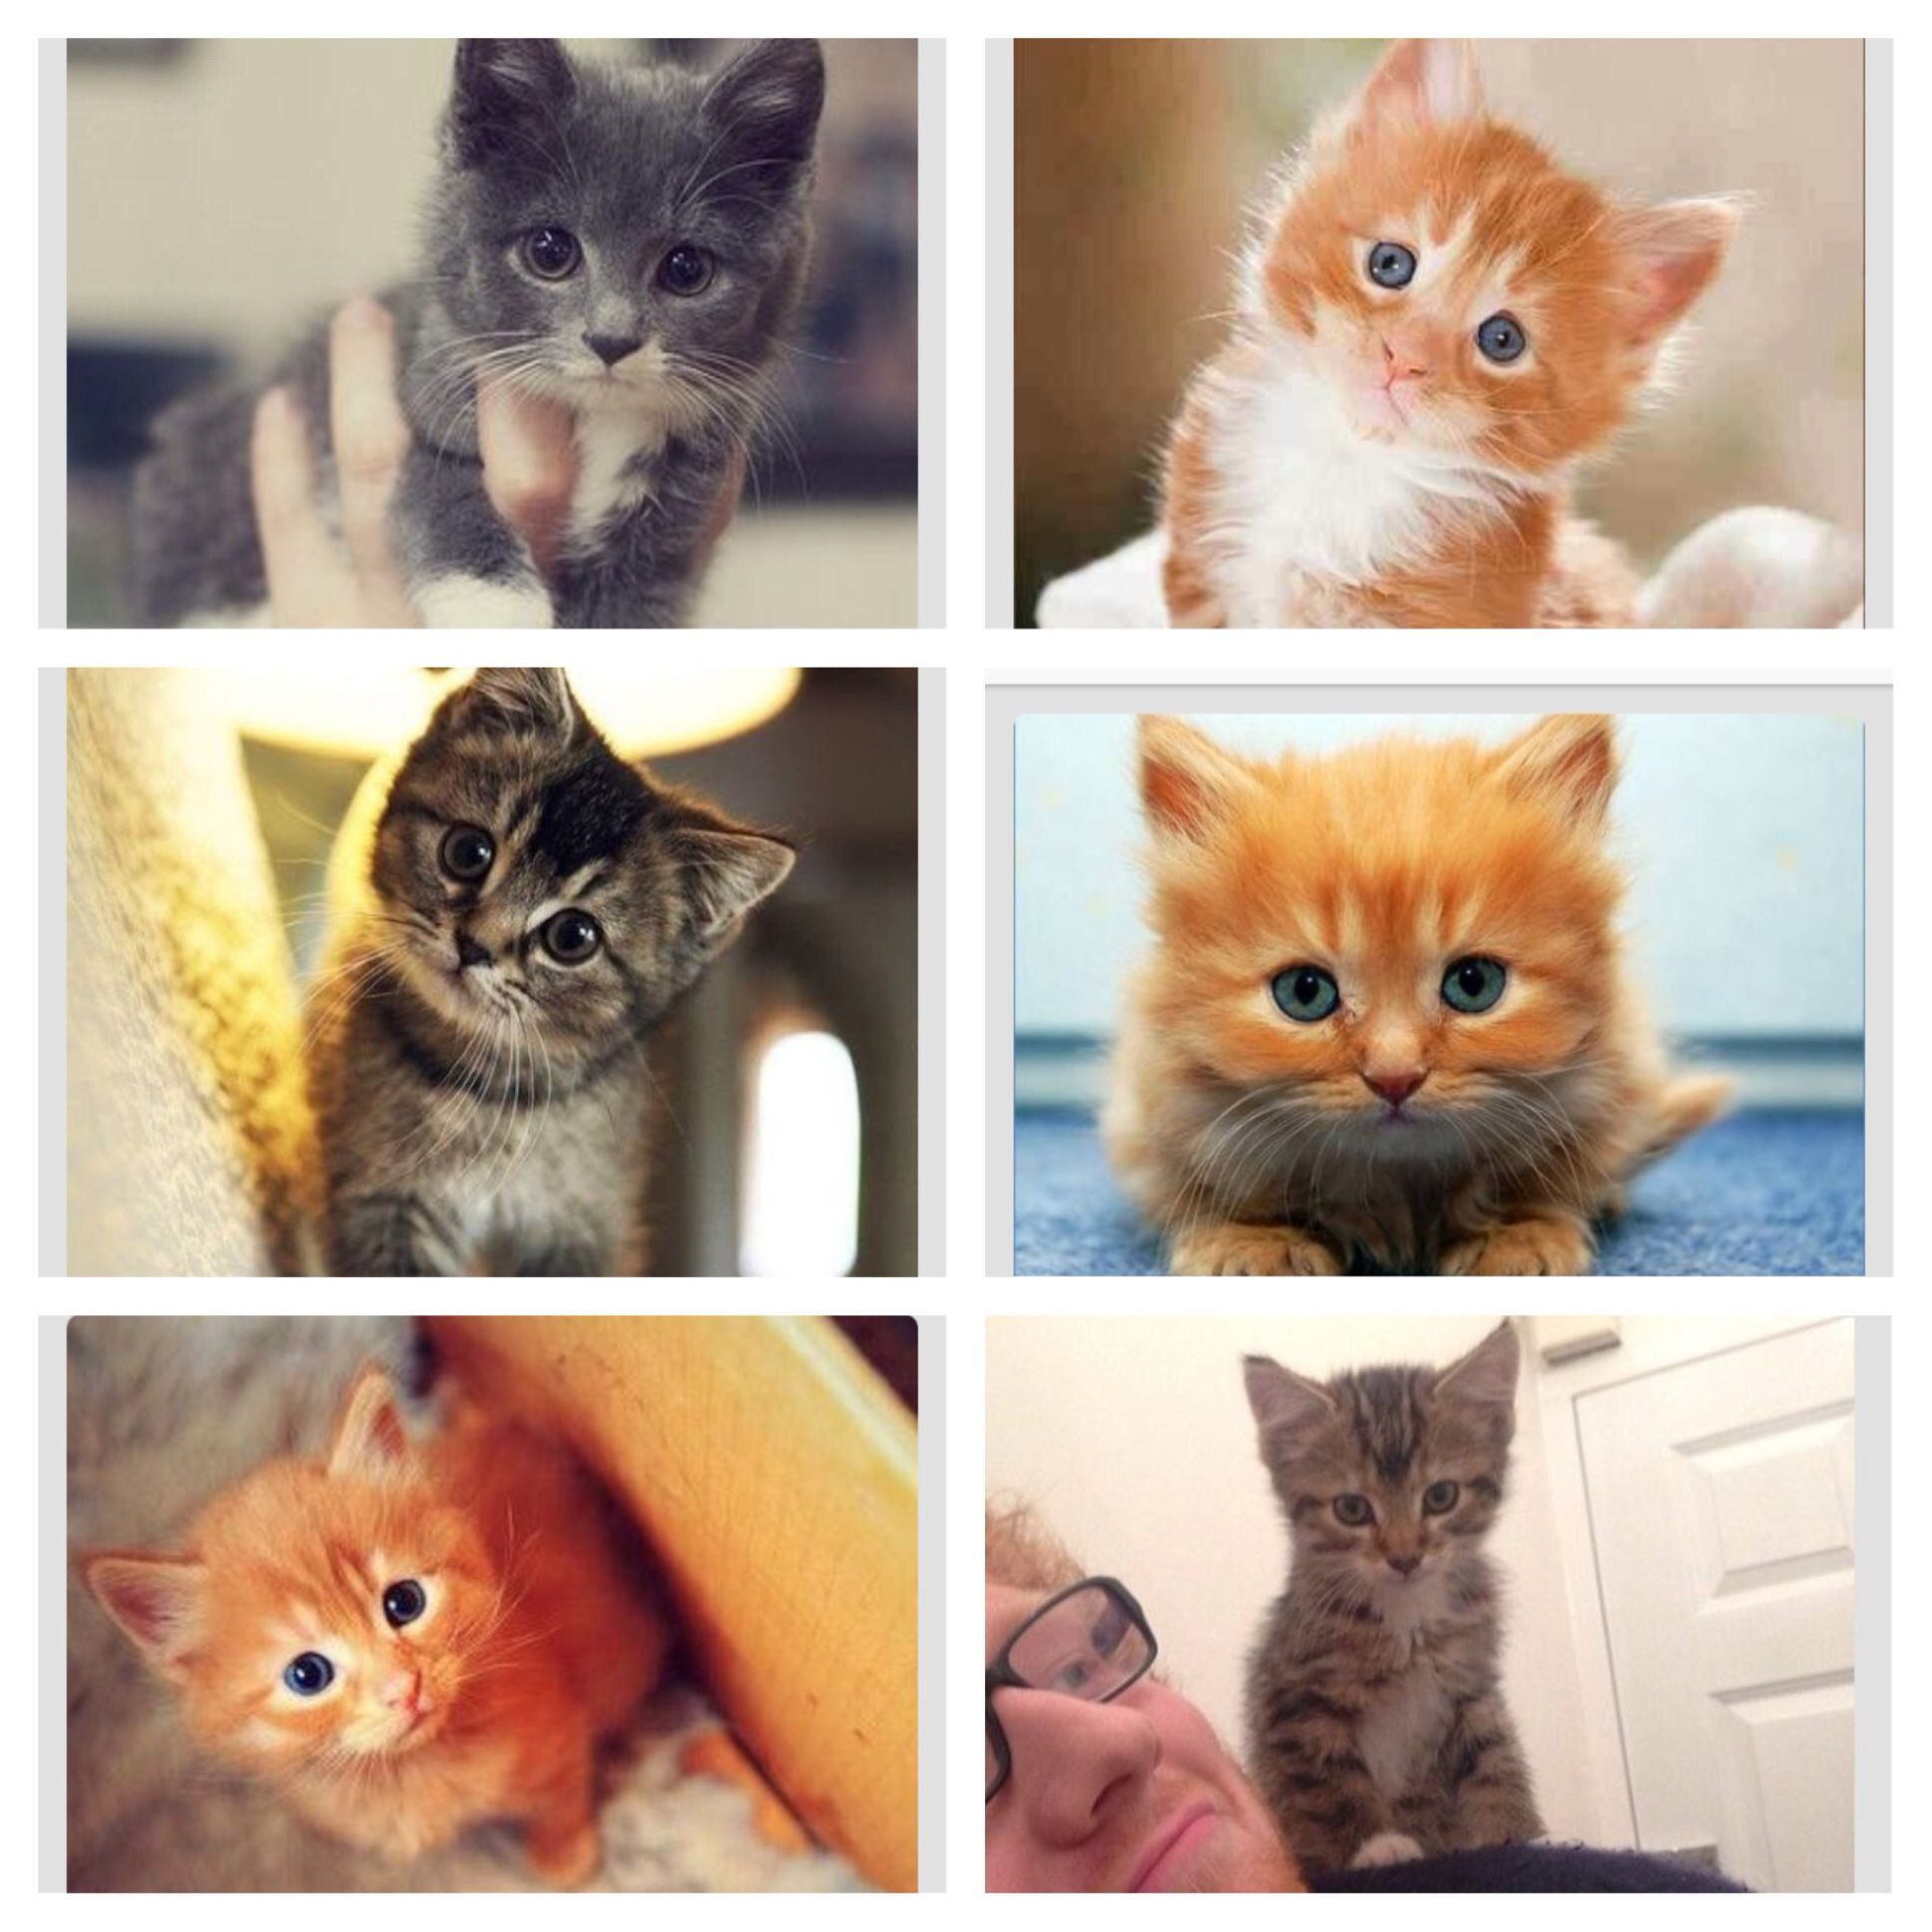 Can you tell I want a kitten?!?!?